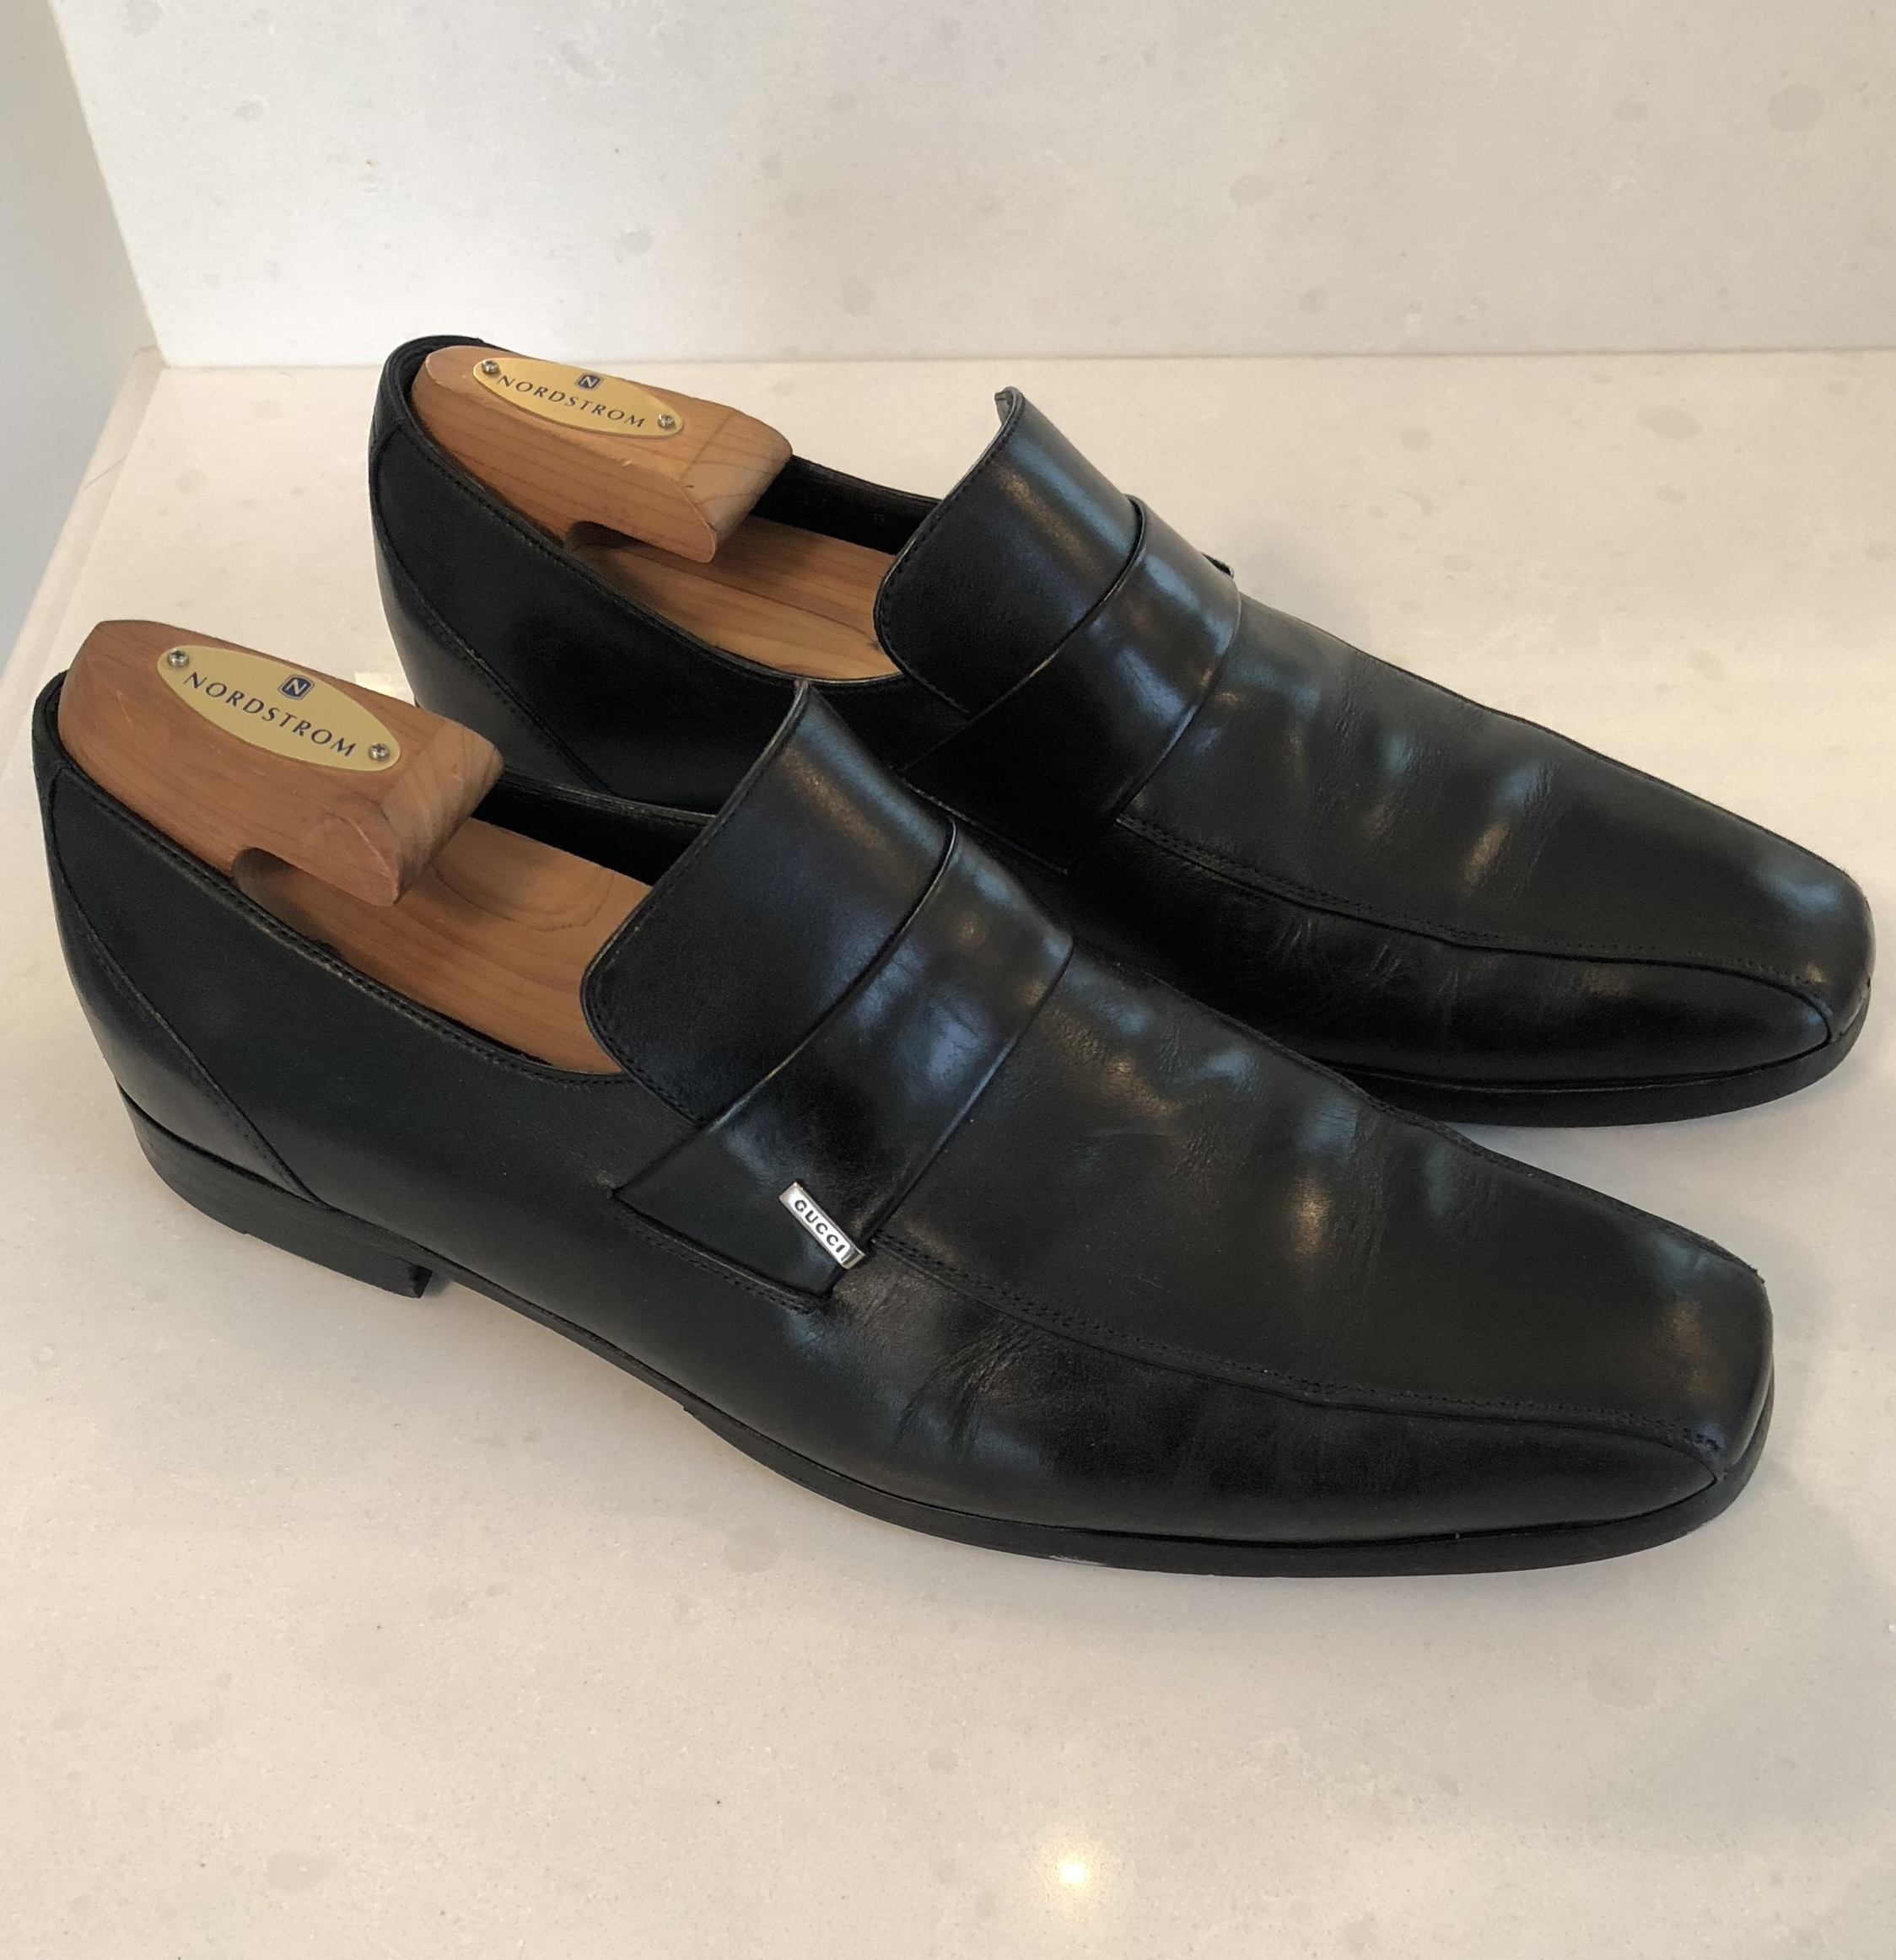 Like these black Gucci slip-ons.